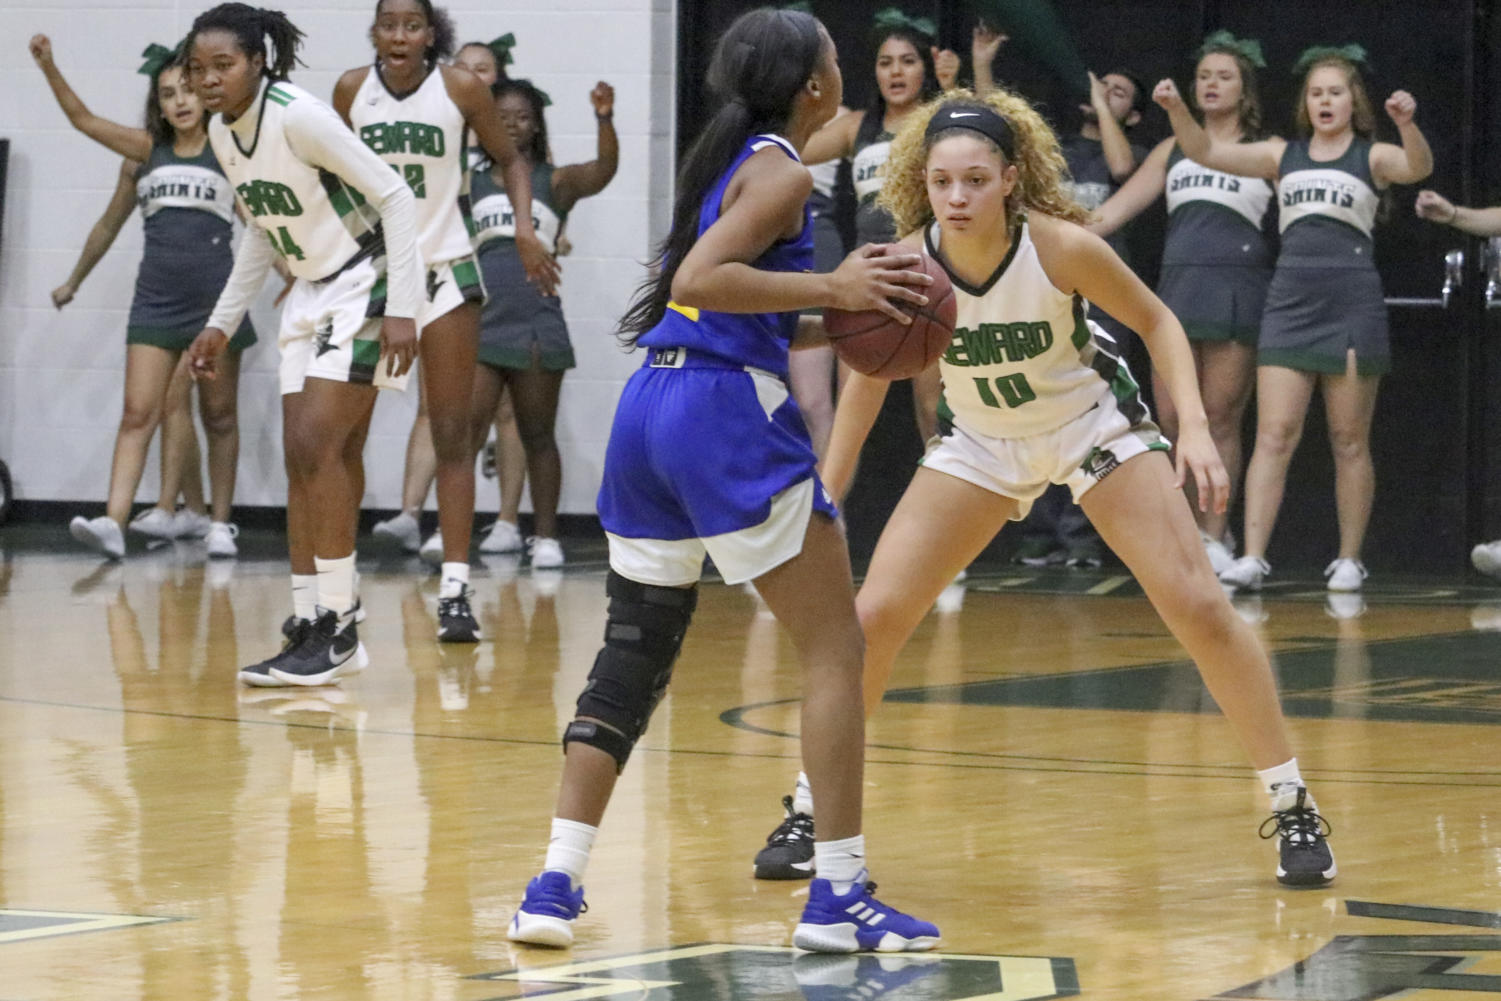 On Nov. 2, the Lady Saints played against Frank Phillip College. The Saints beat them 80-68 during the Pizza Hut Classic. This puts them at 2-0 early in the season.